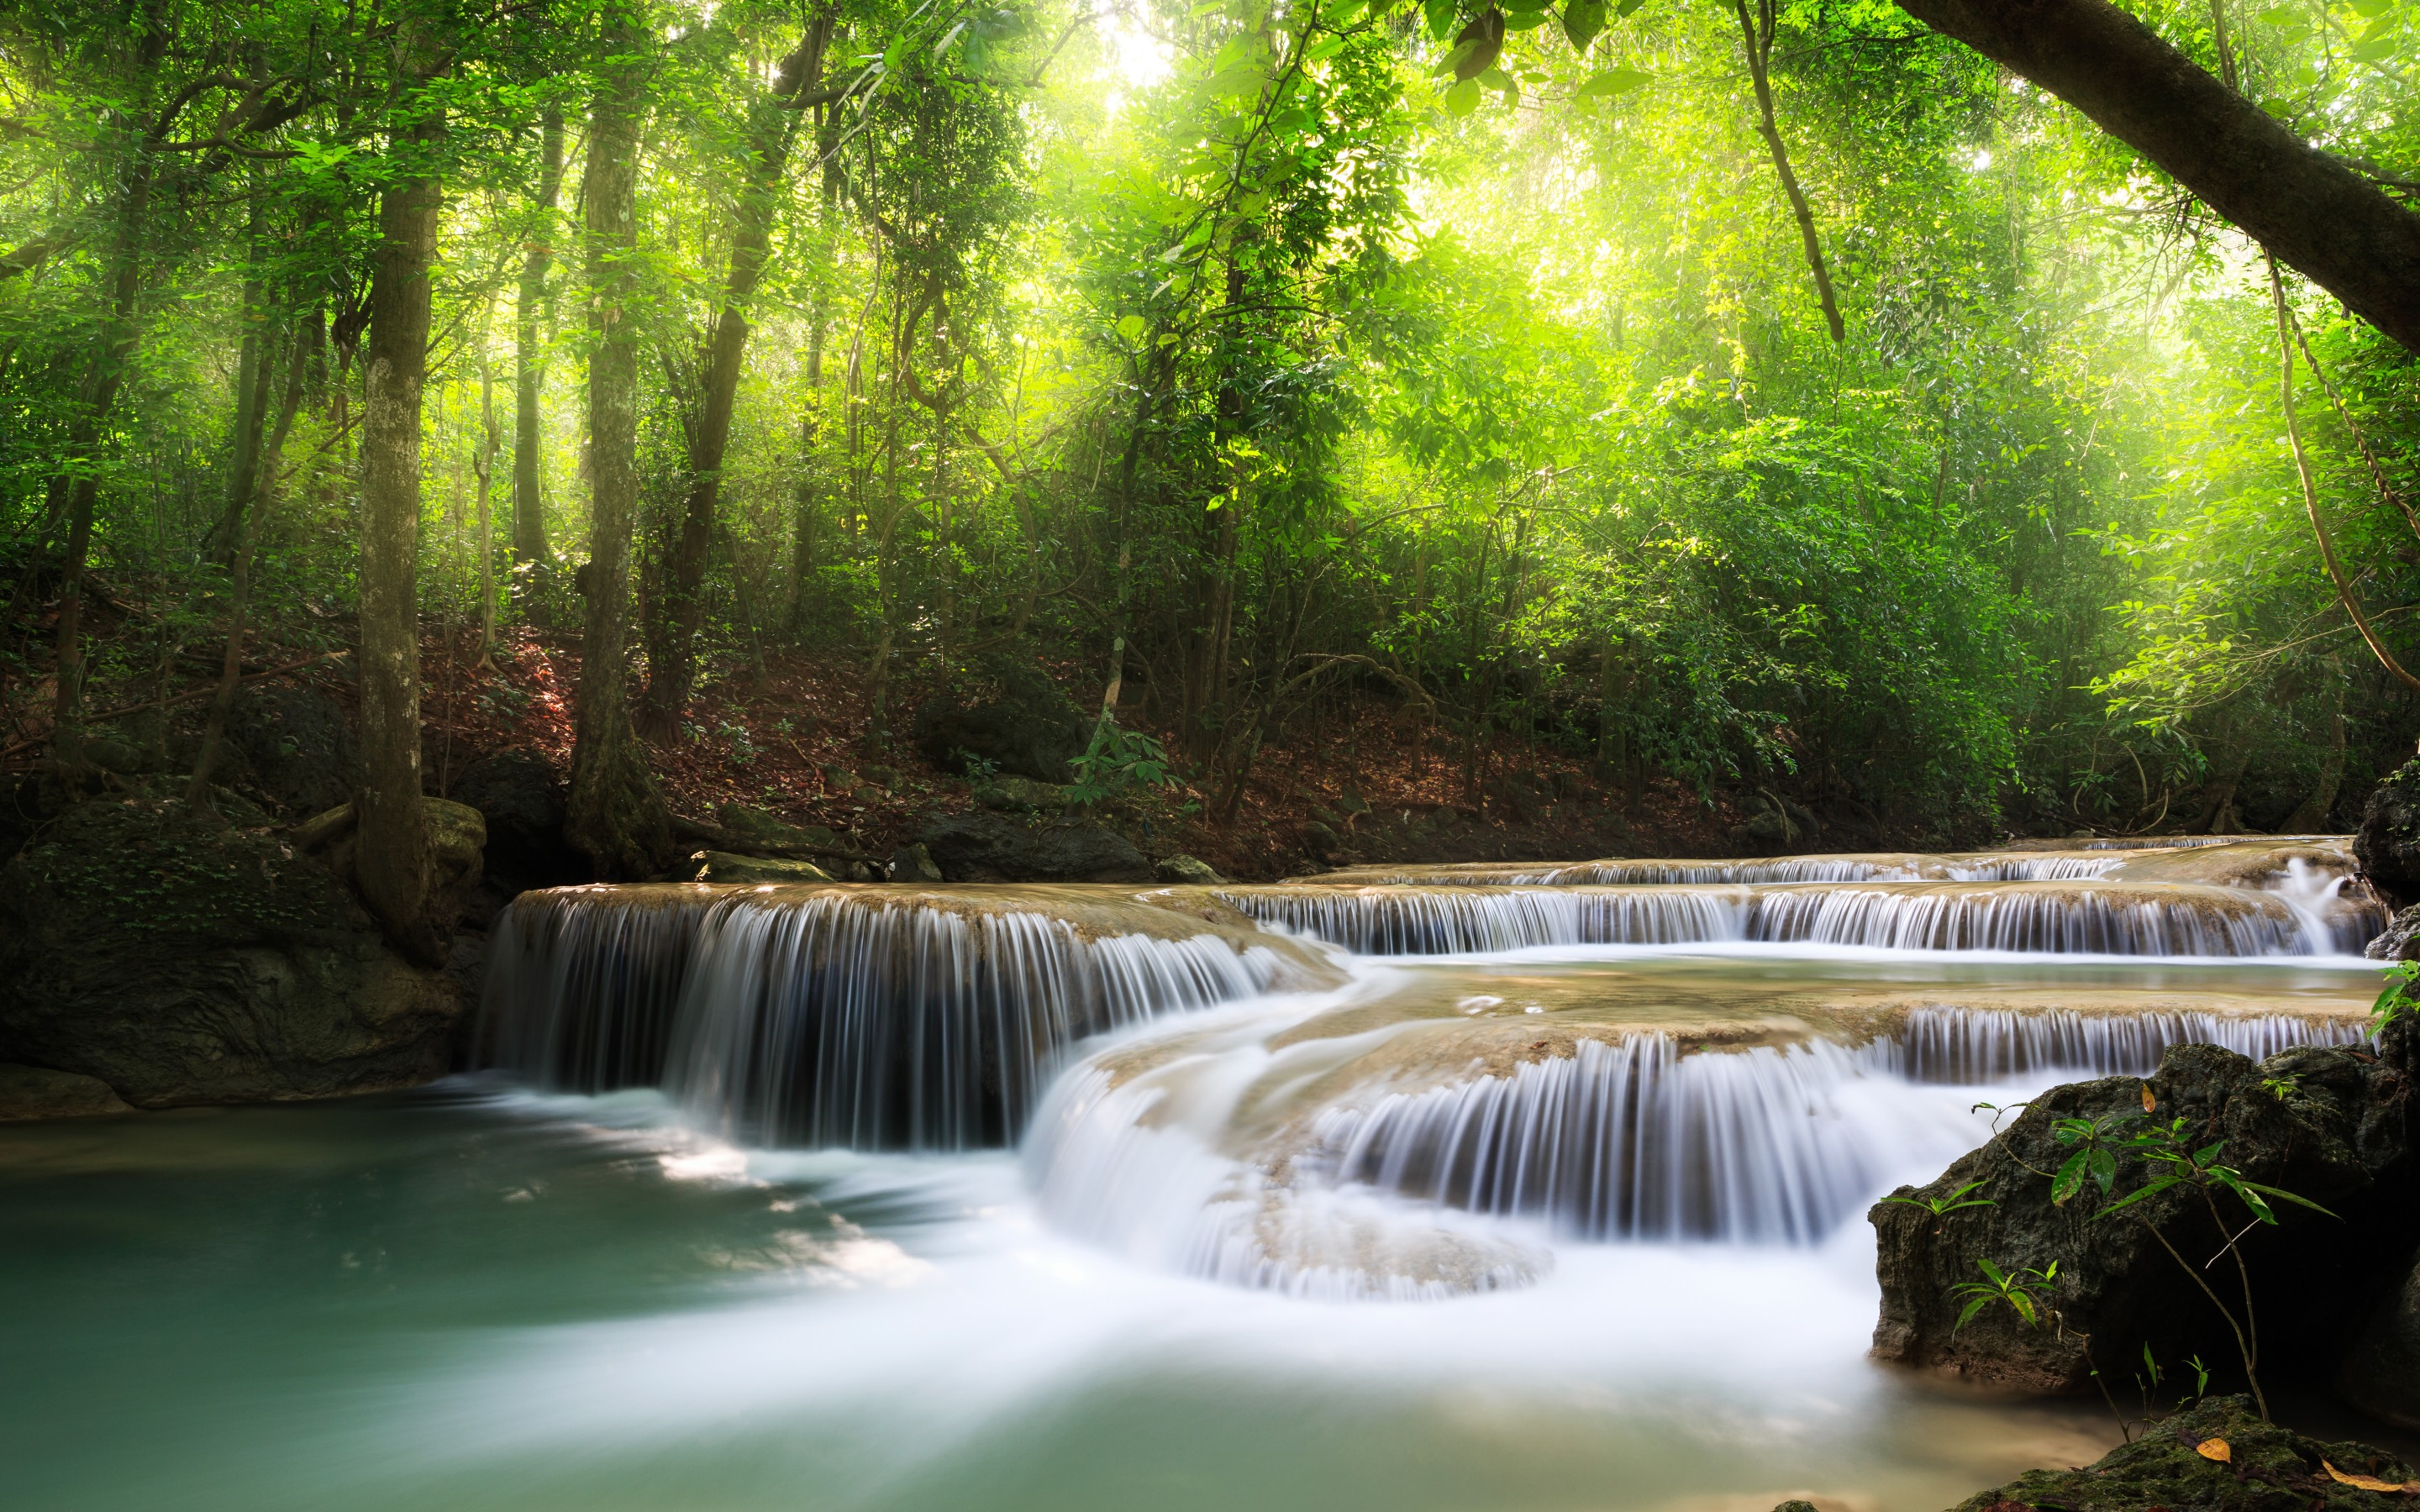 Small waterfall in the forest wallpaper - 1072411